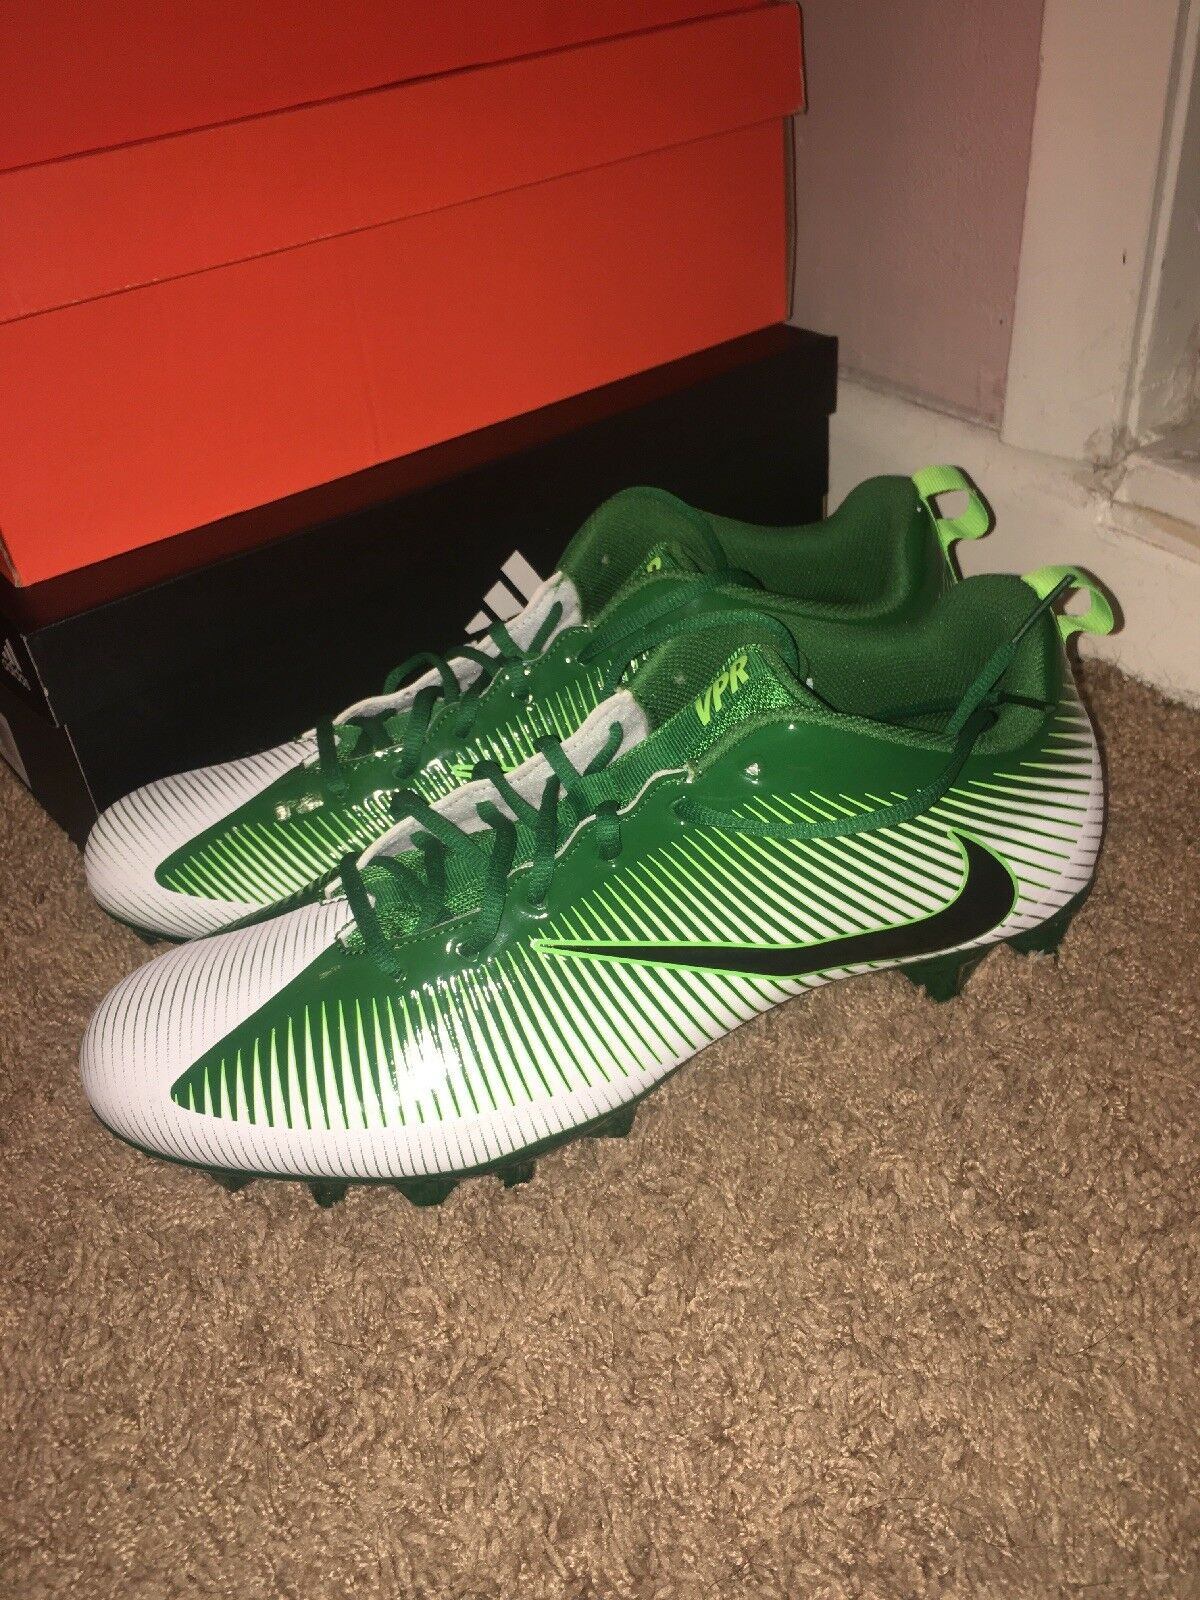 NEW Nike Vapor Strike 5 TD Men's Comfortable The latest discount shoes for men and women